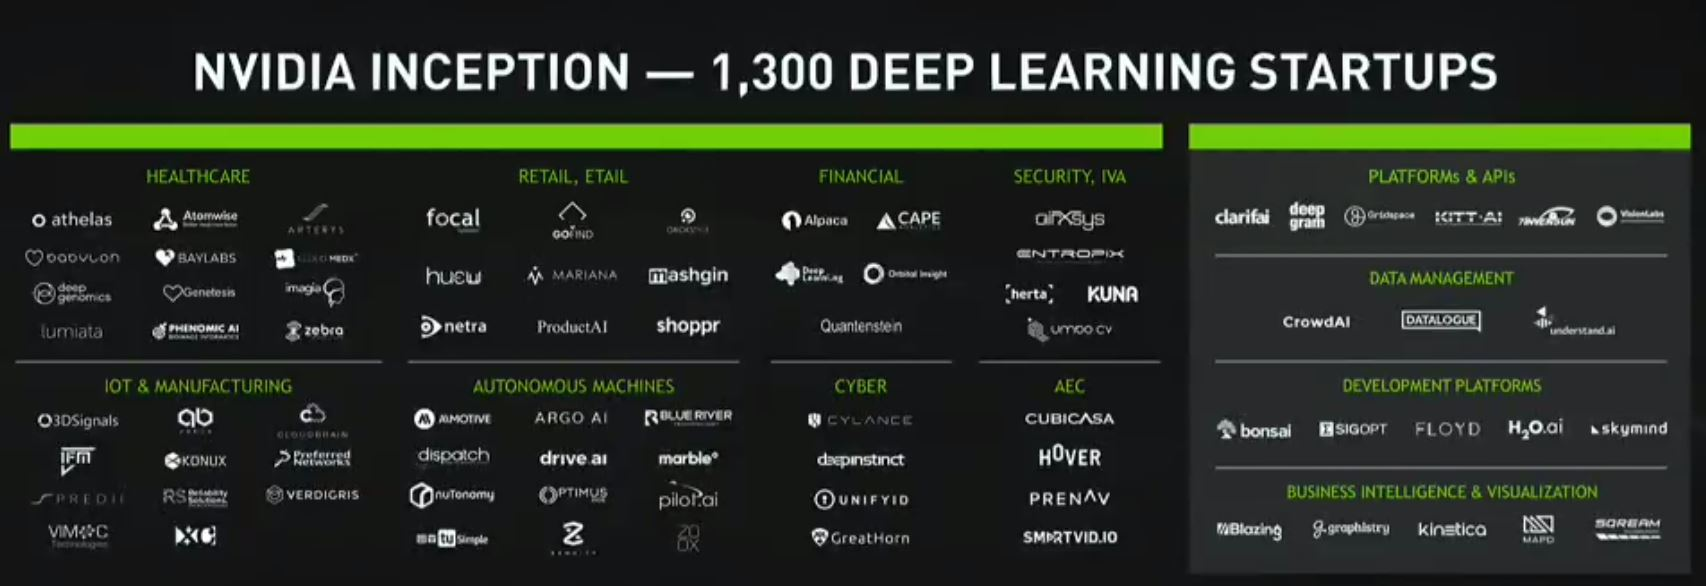 NVIDIA GTX 2017 18 Month Old NVIDIA Inception 1300 Companies